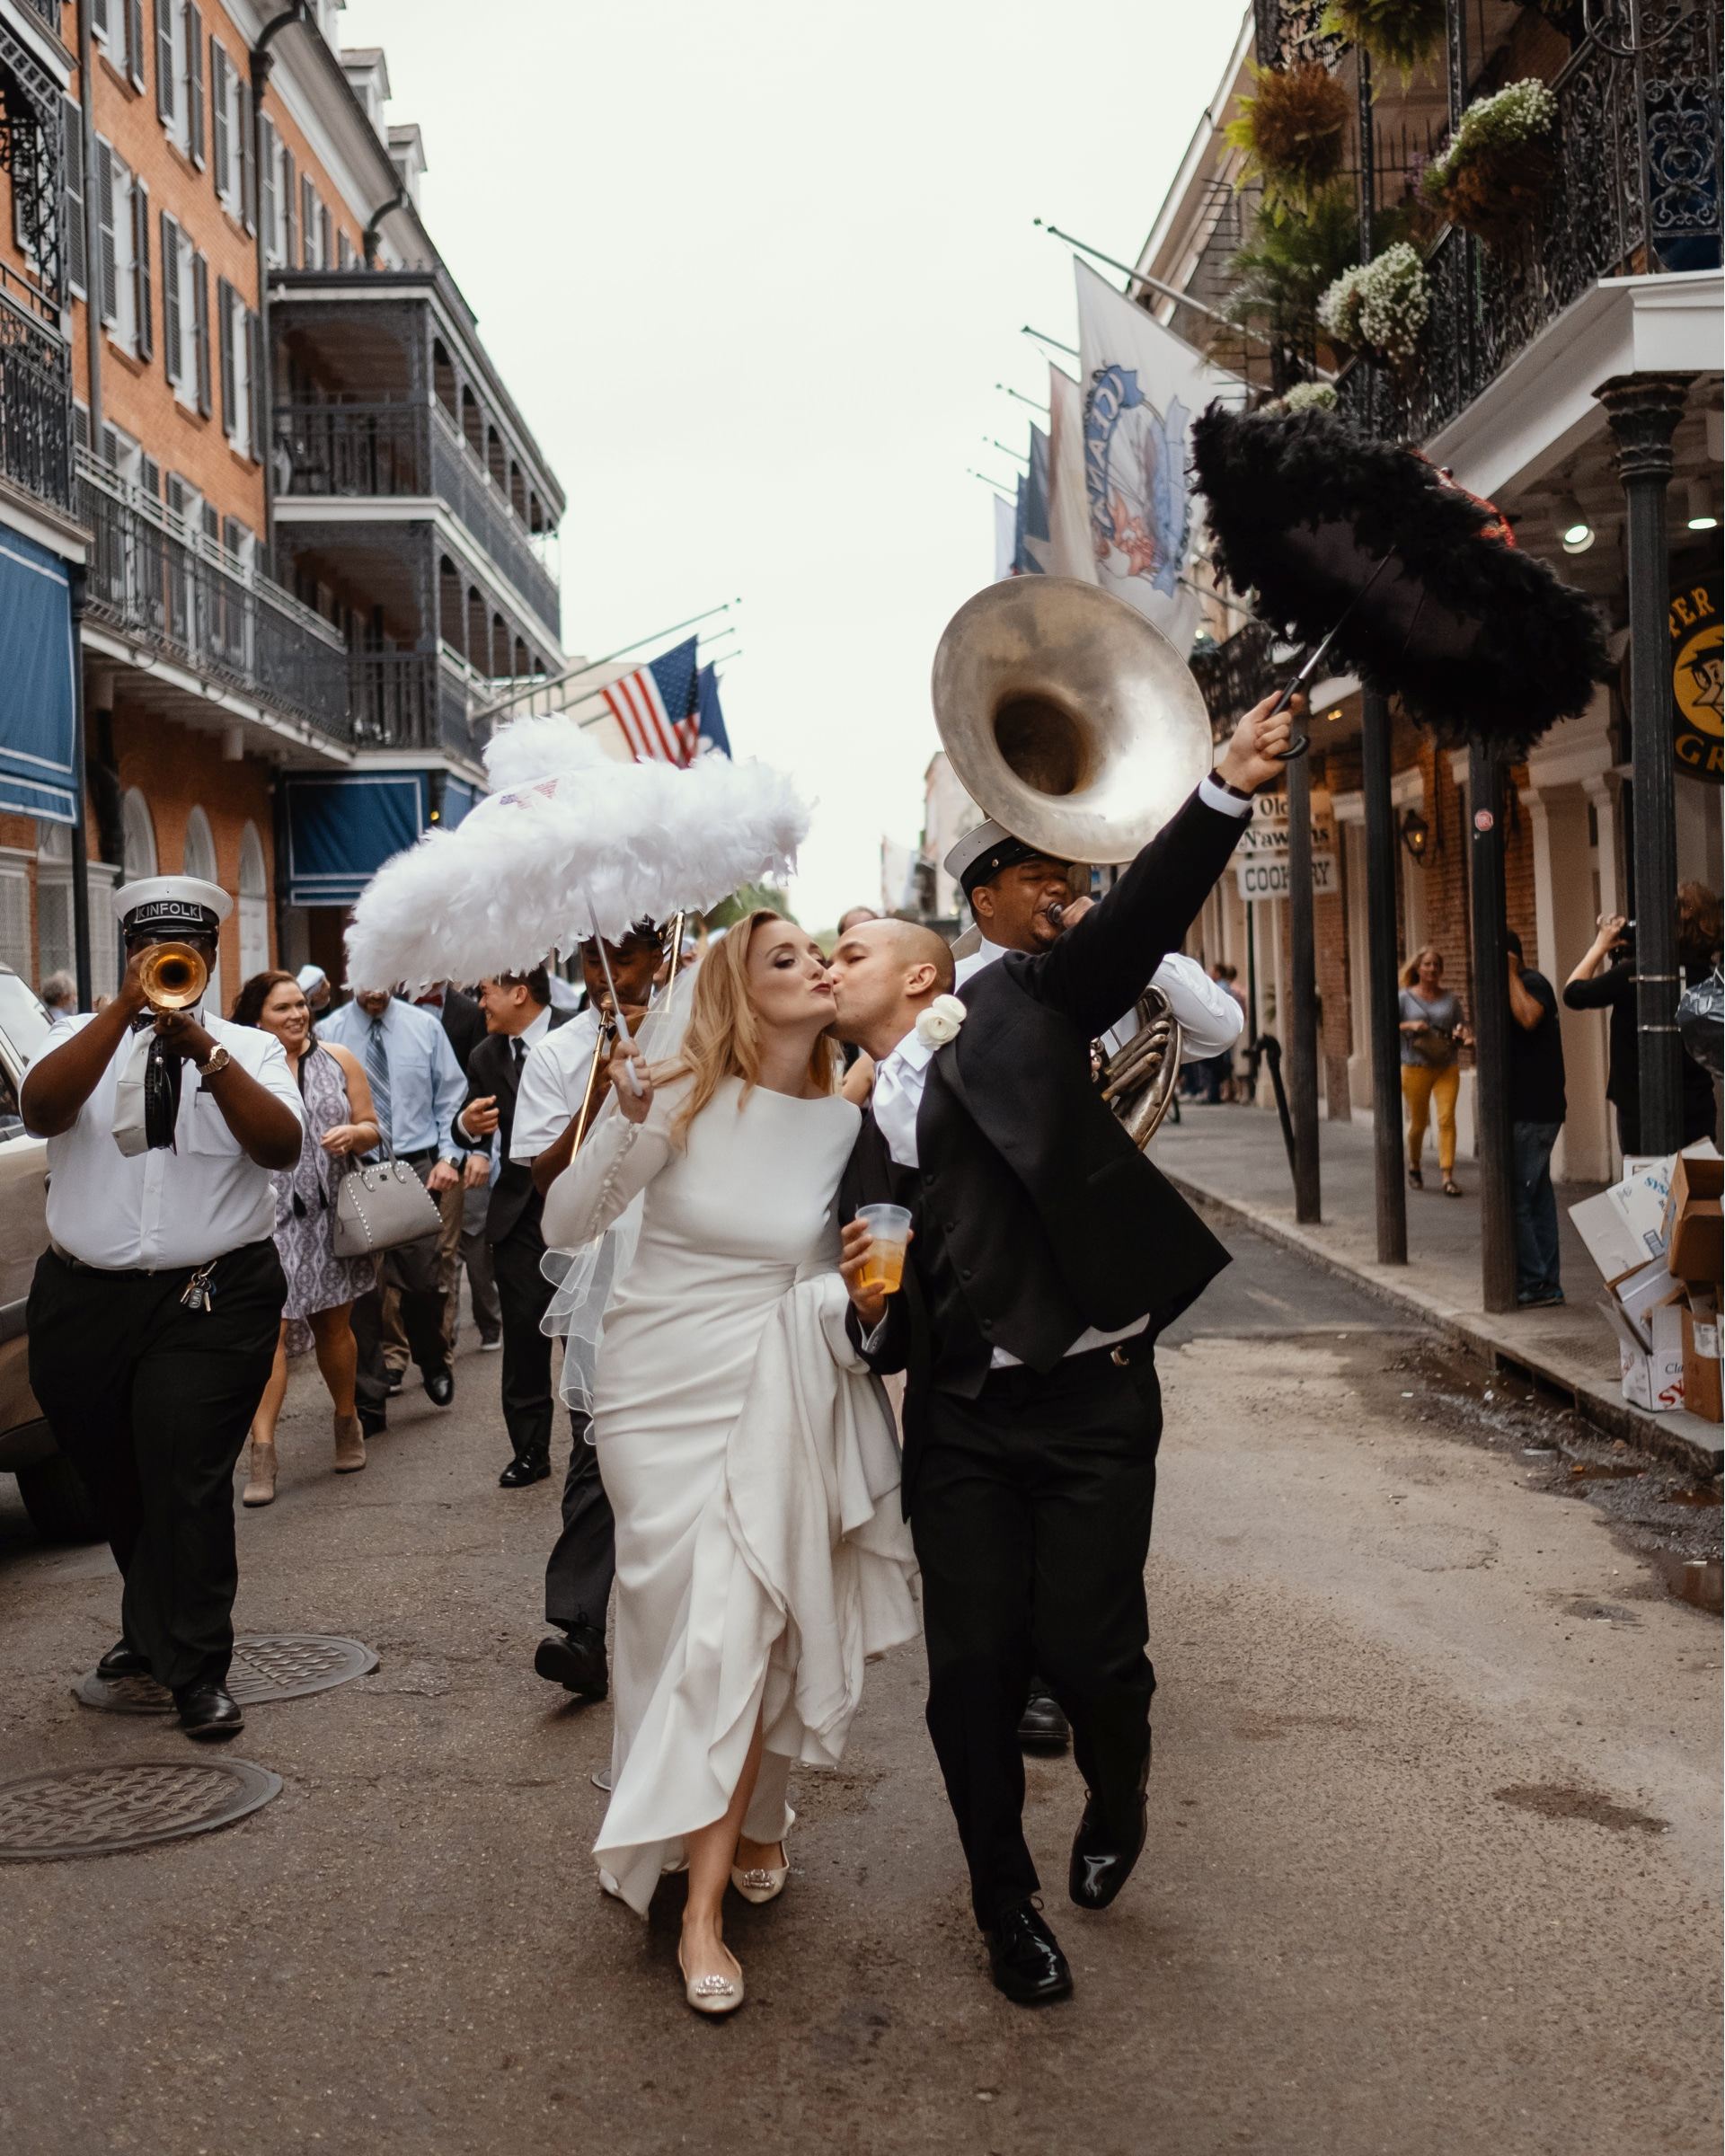 New Orleans parade with just married couple - photo by Dark Roux